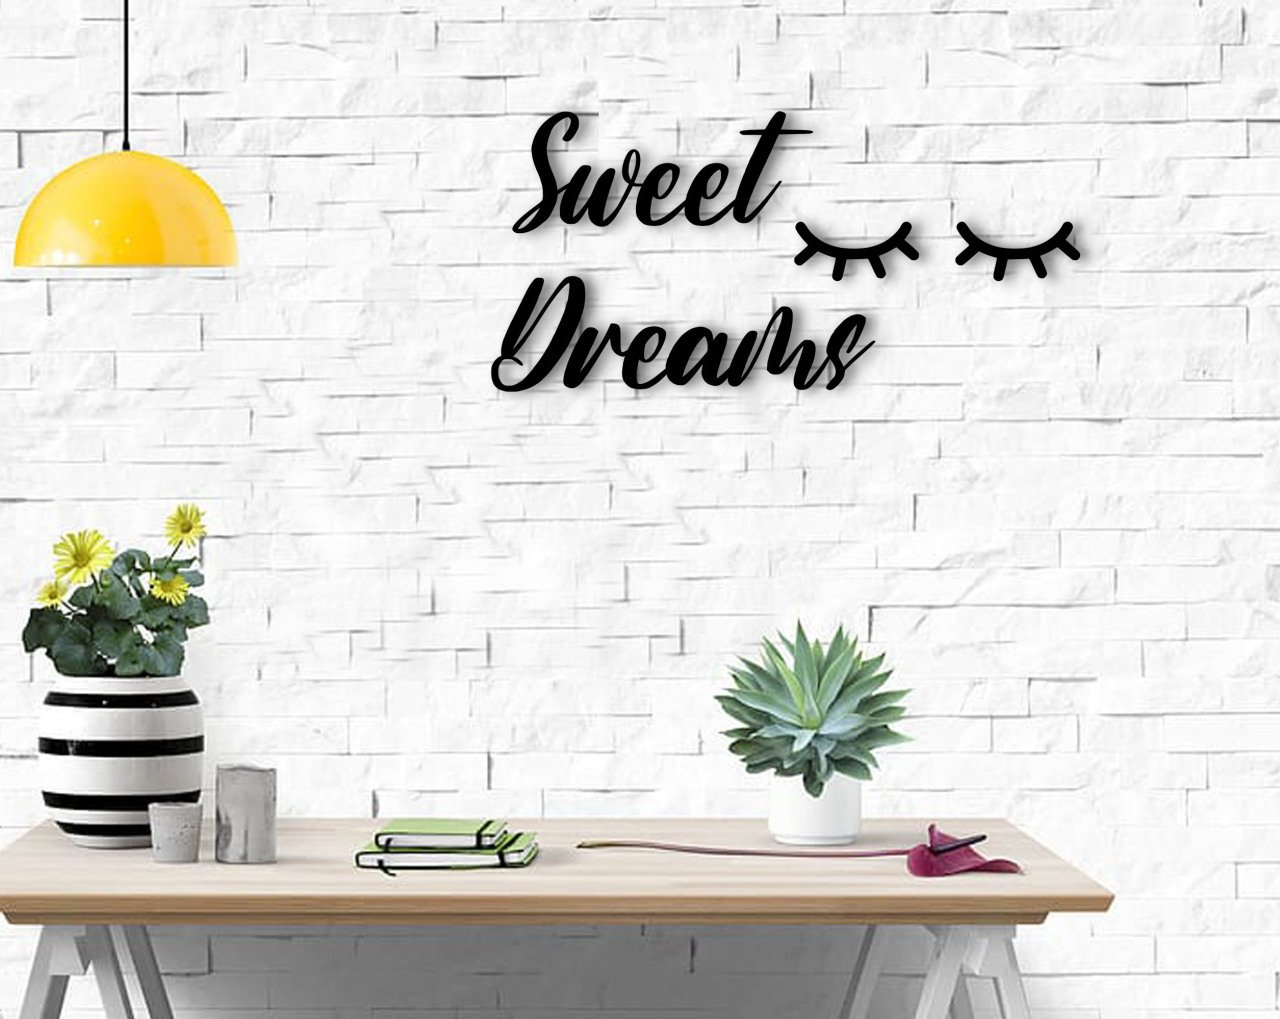 BK Home Sweat Dreams Wood Wall Post Modern Convenient Reliable Decoration Gift Quality Design Simple Cool Black Color